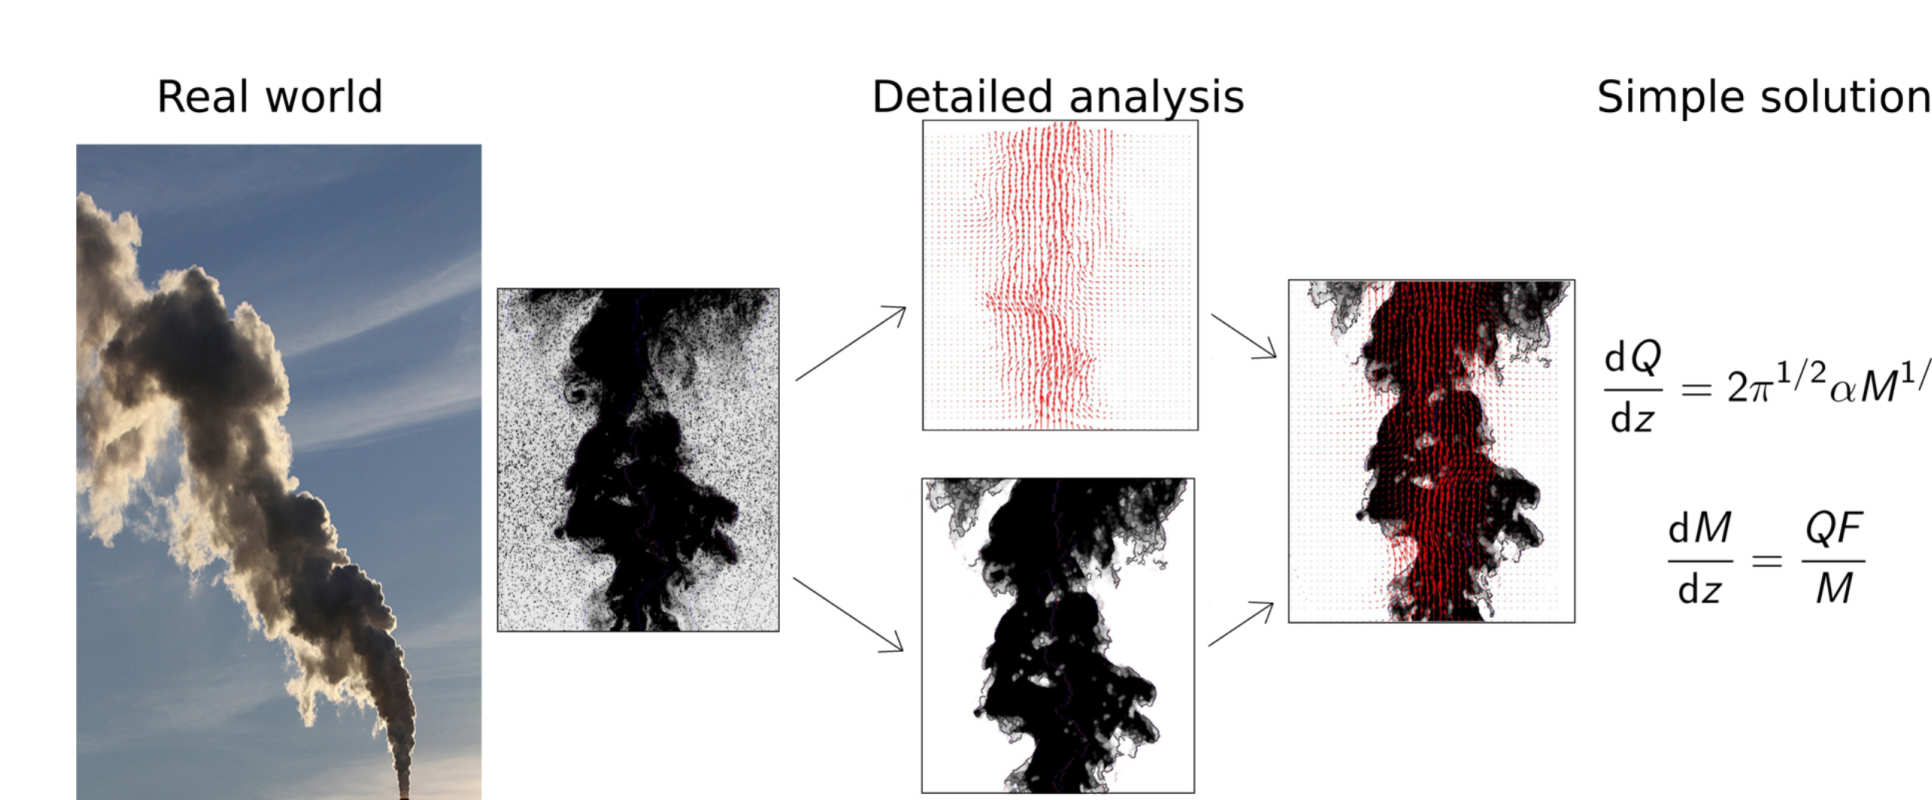 We will show you how to go from real-world complex flows like the smoke plume picture to simple solutions that describe the dominant physics.